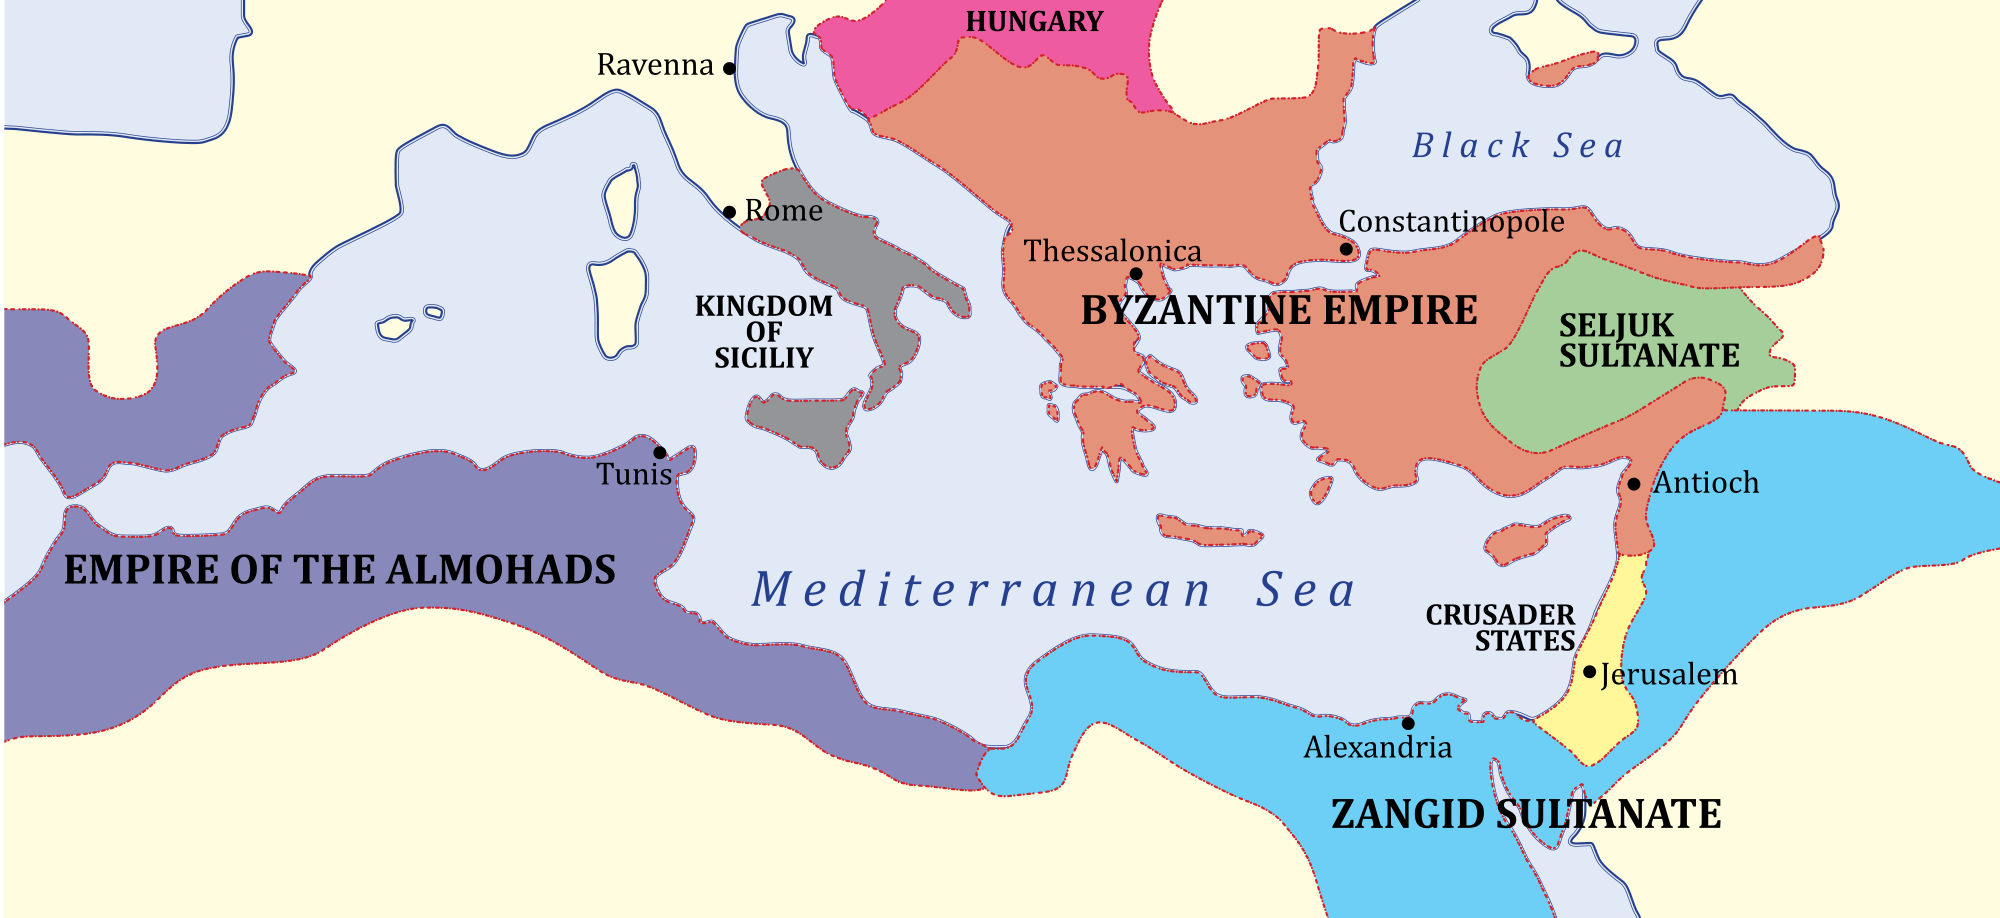 https://www.istanbulclues.com/wp-content/uploads/2016/10/Byzantine-Empire-Map-1200-Before-Latin-Invasion.png